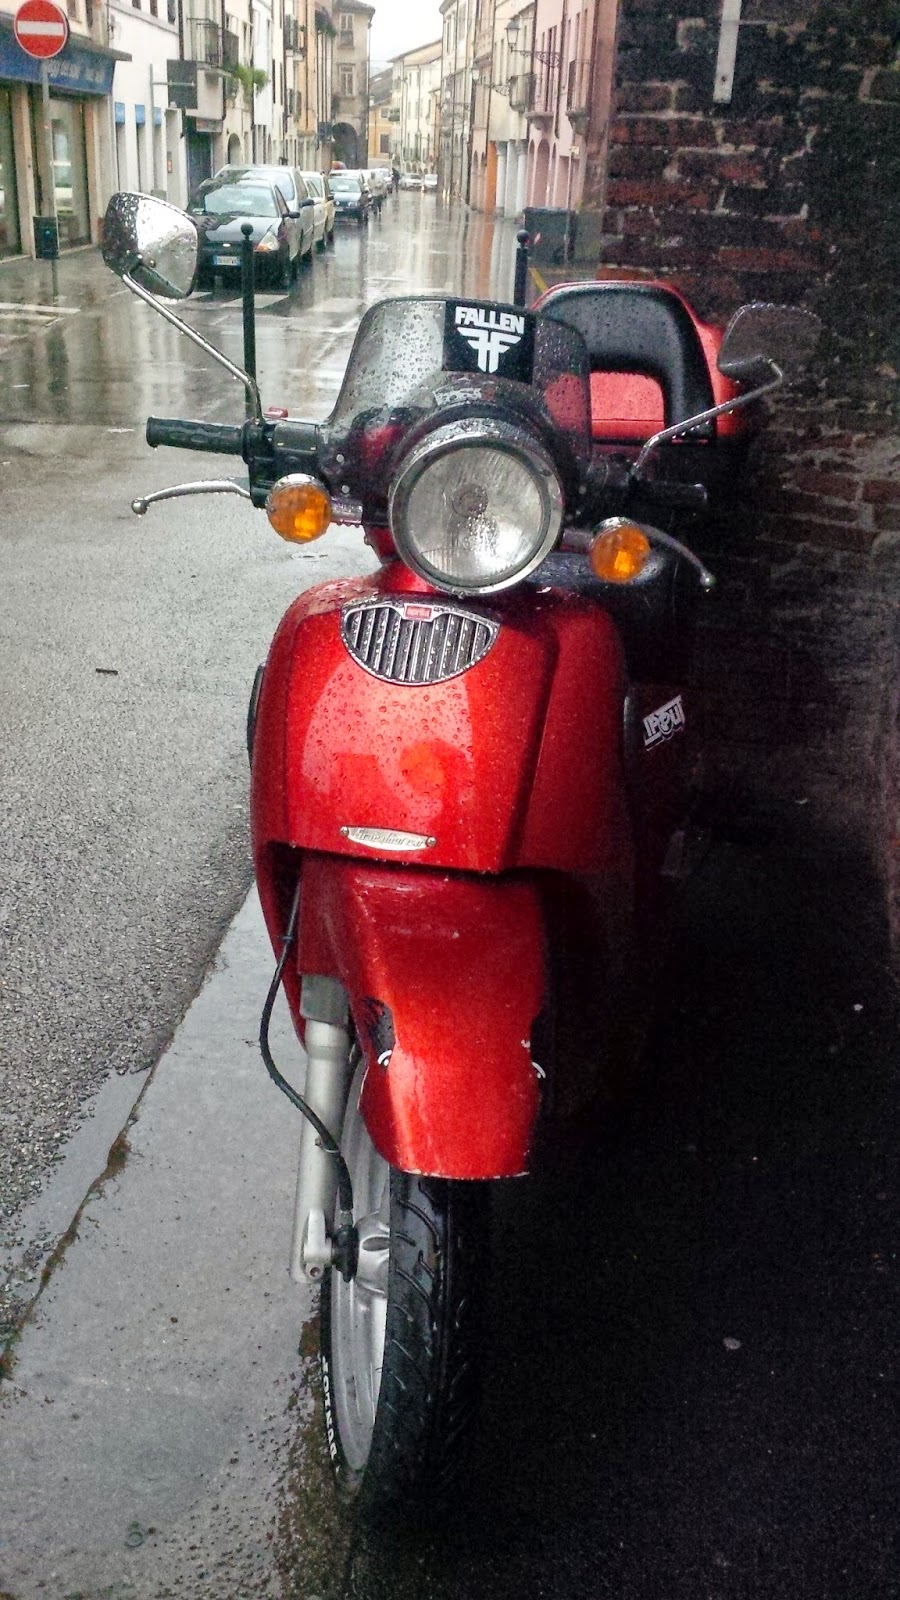 red moped wet with rain streets of Vicenza